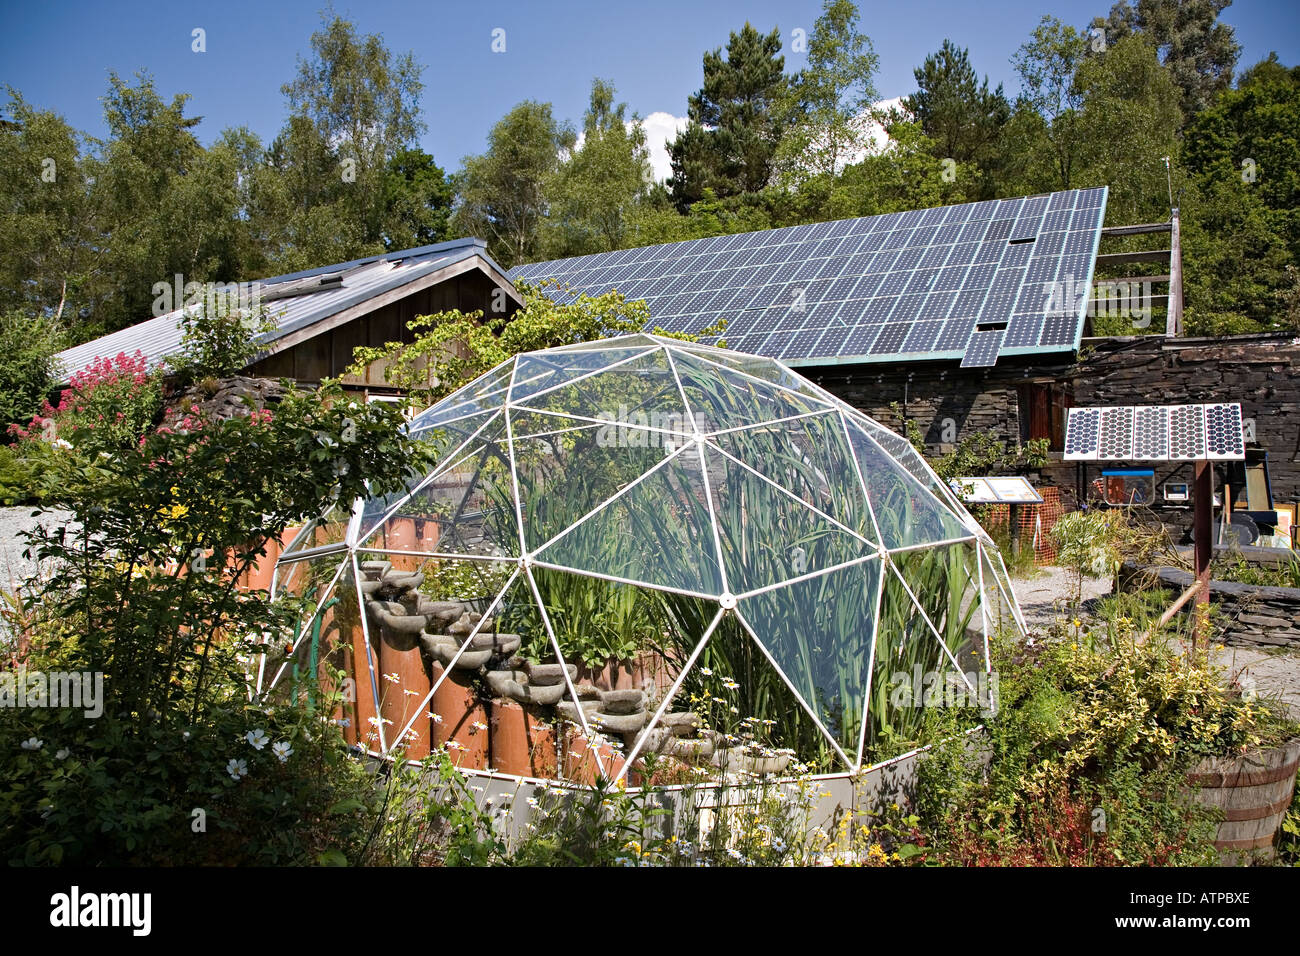 Lovely Geodesic Dome Greenhouse And Buildings With Solar Panel Roof Centre Of  Alternative Technology Machynlleth Powys Wales UK